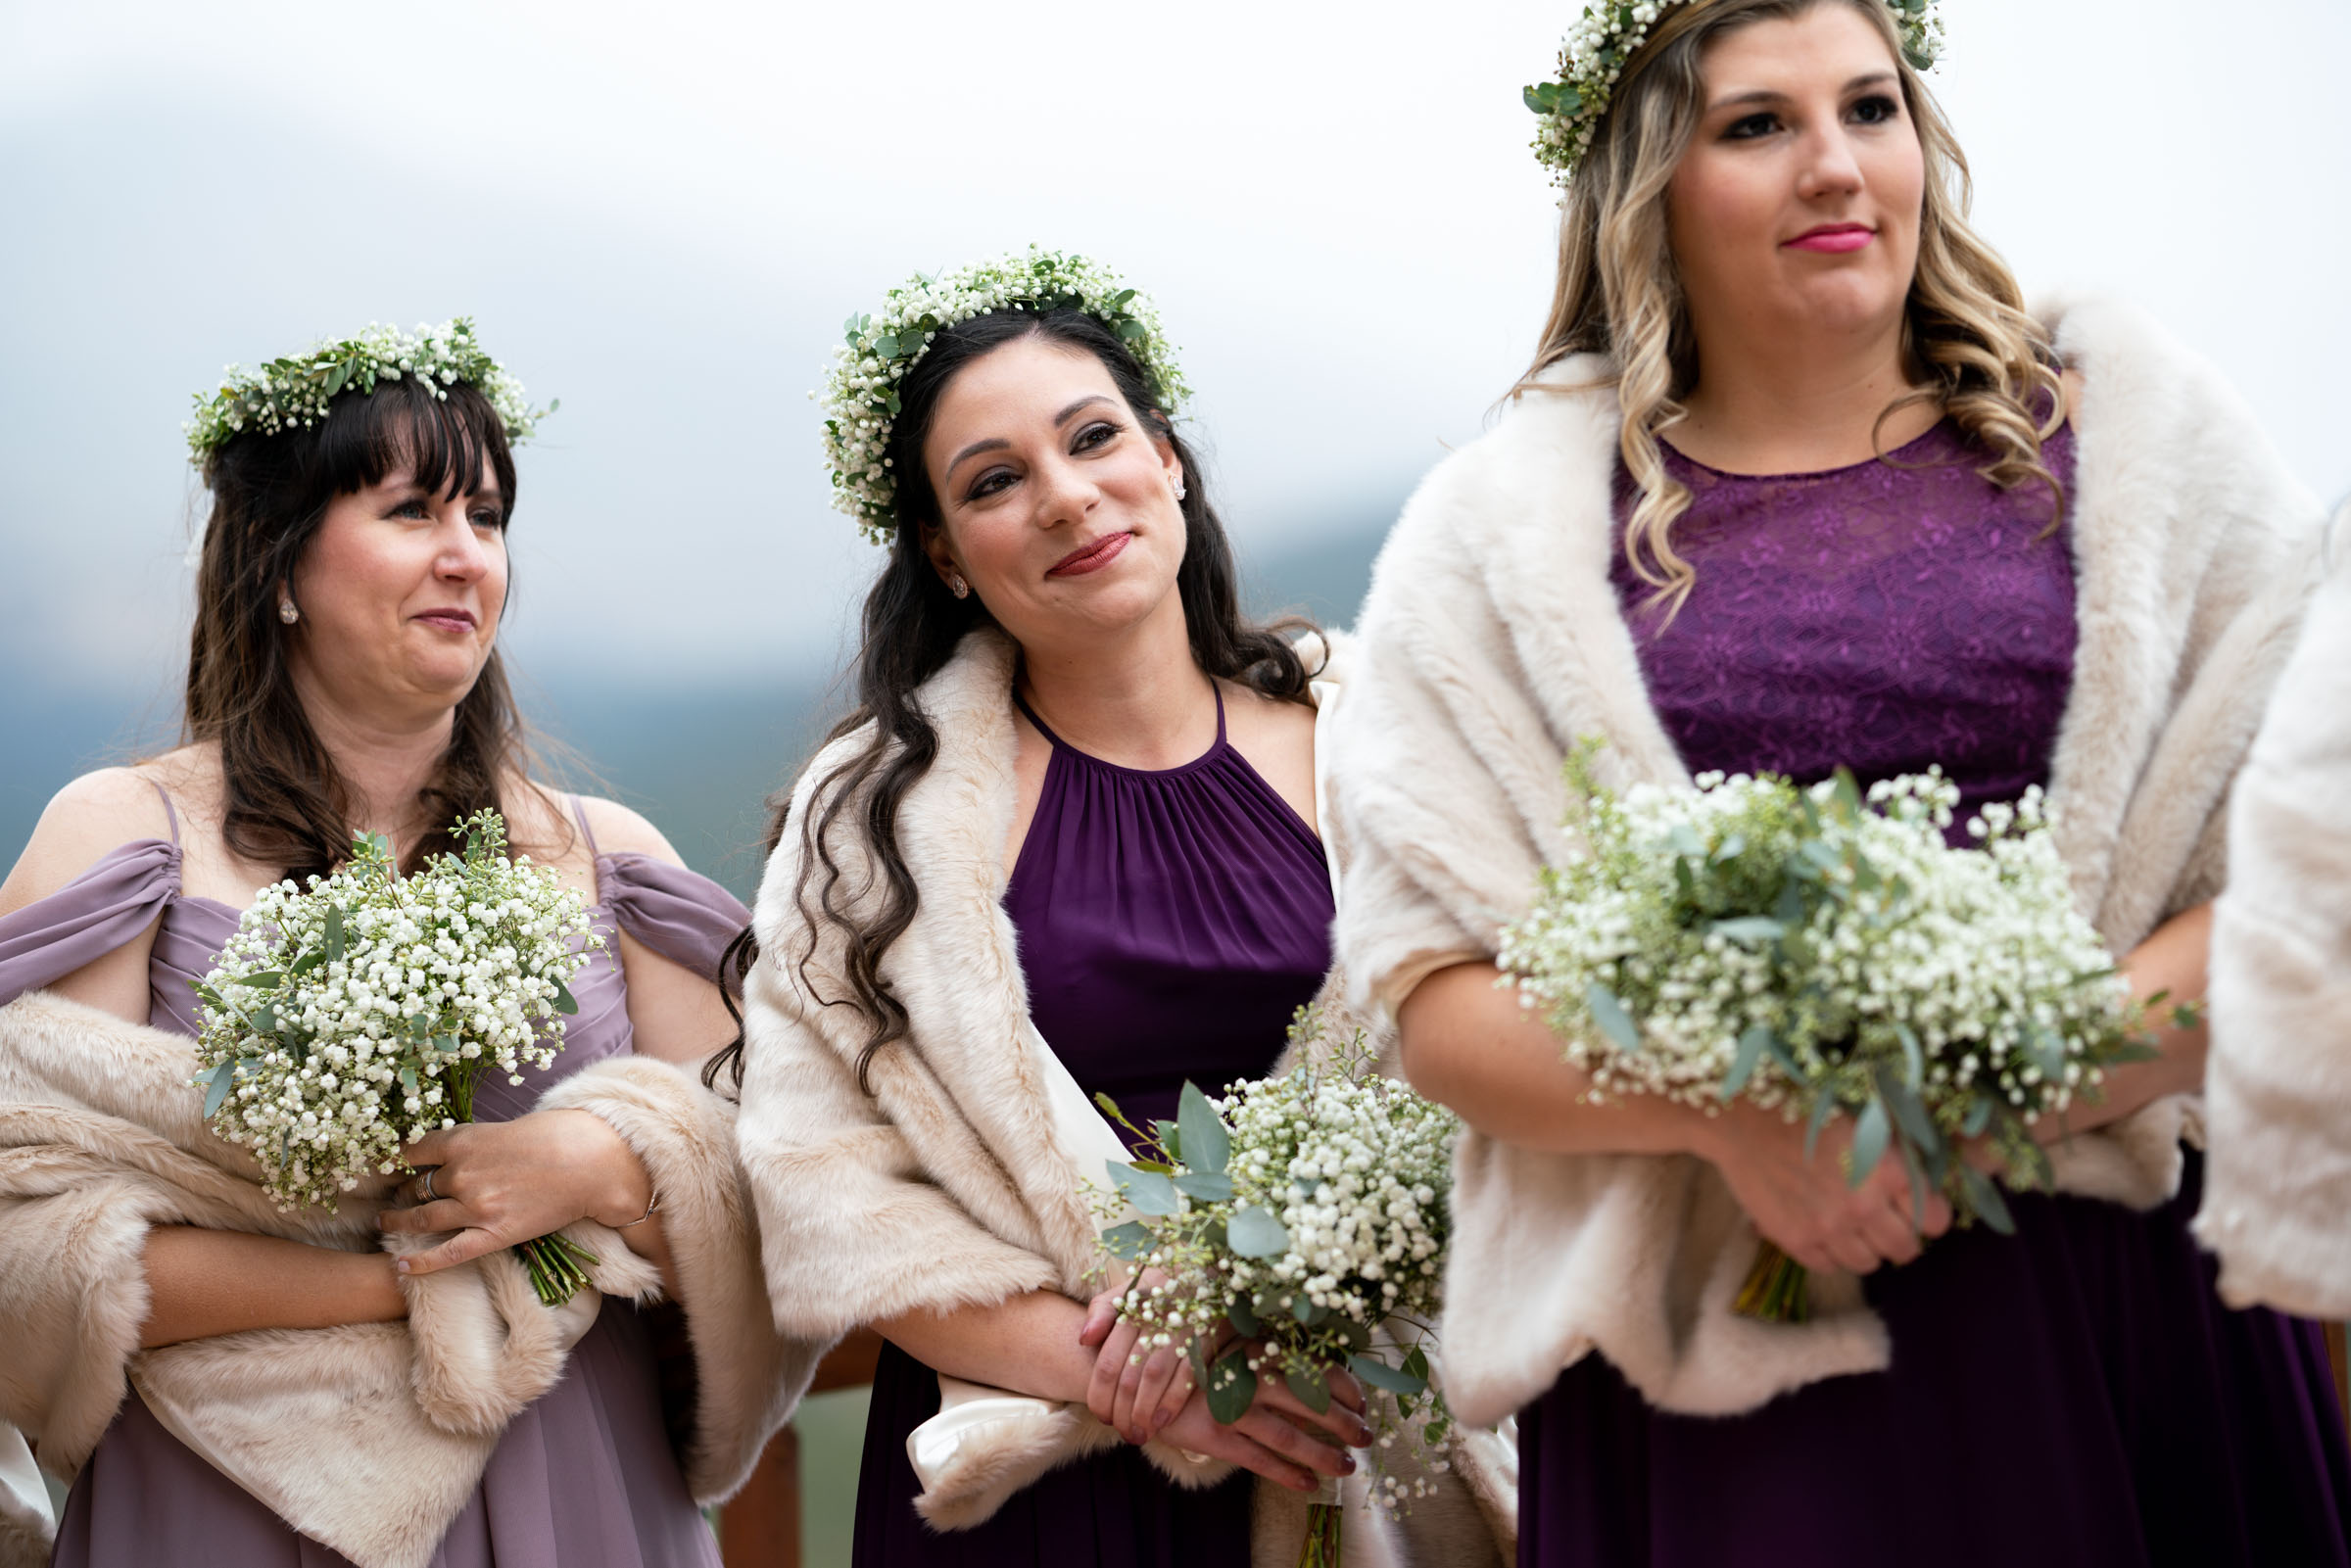 Breckenridge_Colorado_Wedding_DaraLynne_Nathan012.jpg